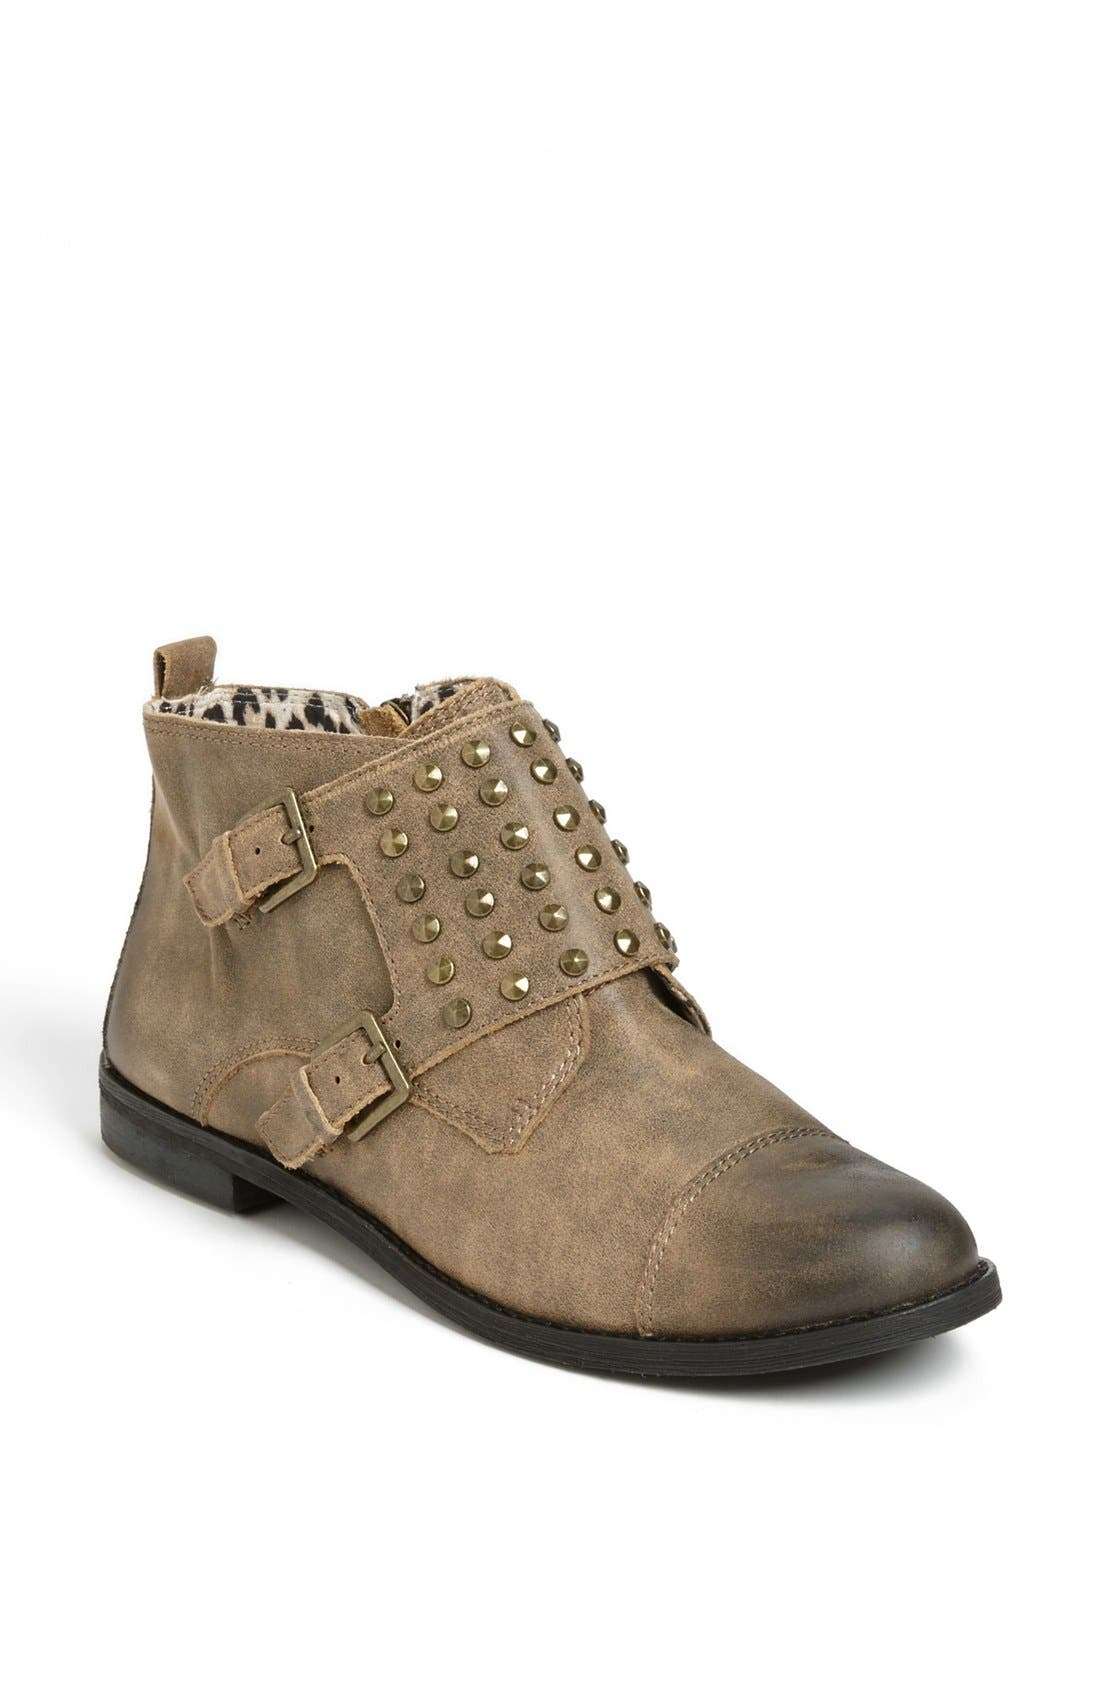 Alternate Image 1 Selected - Lucky Brand 'Dosey' Boot